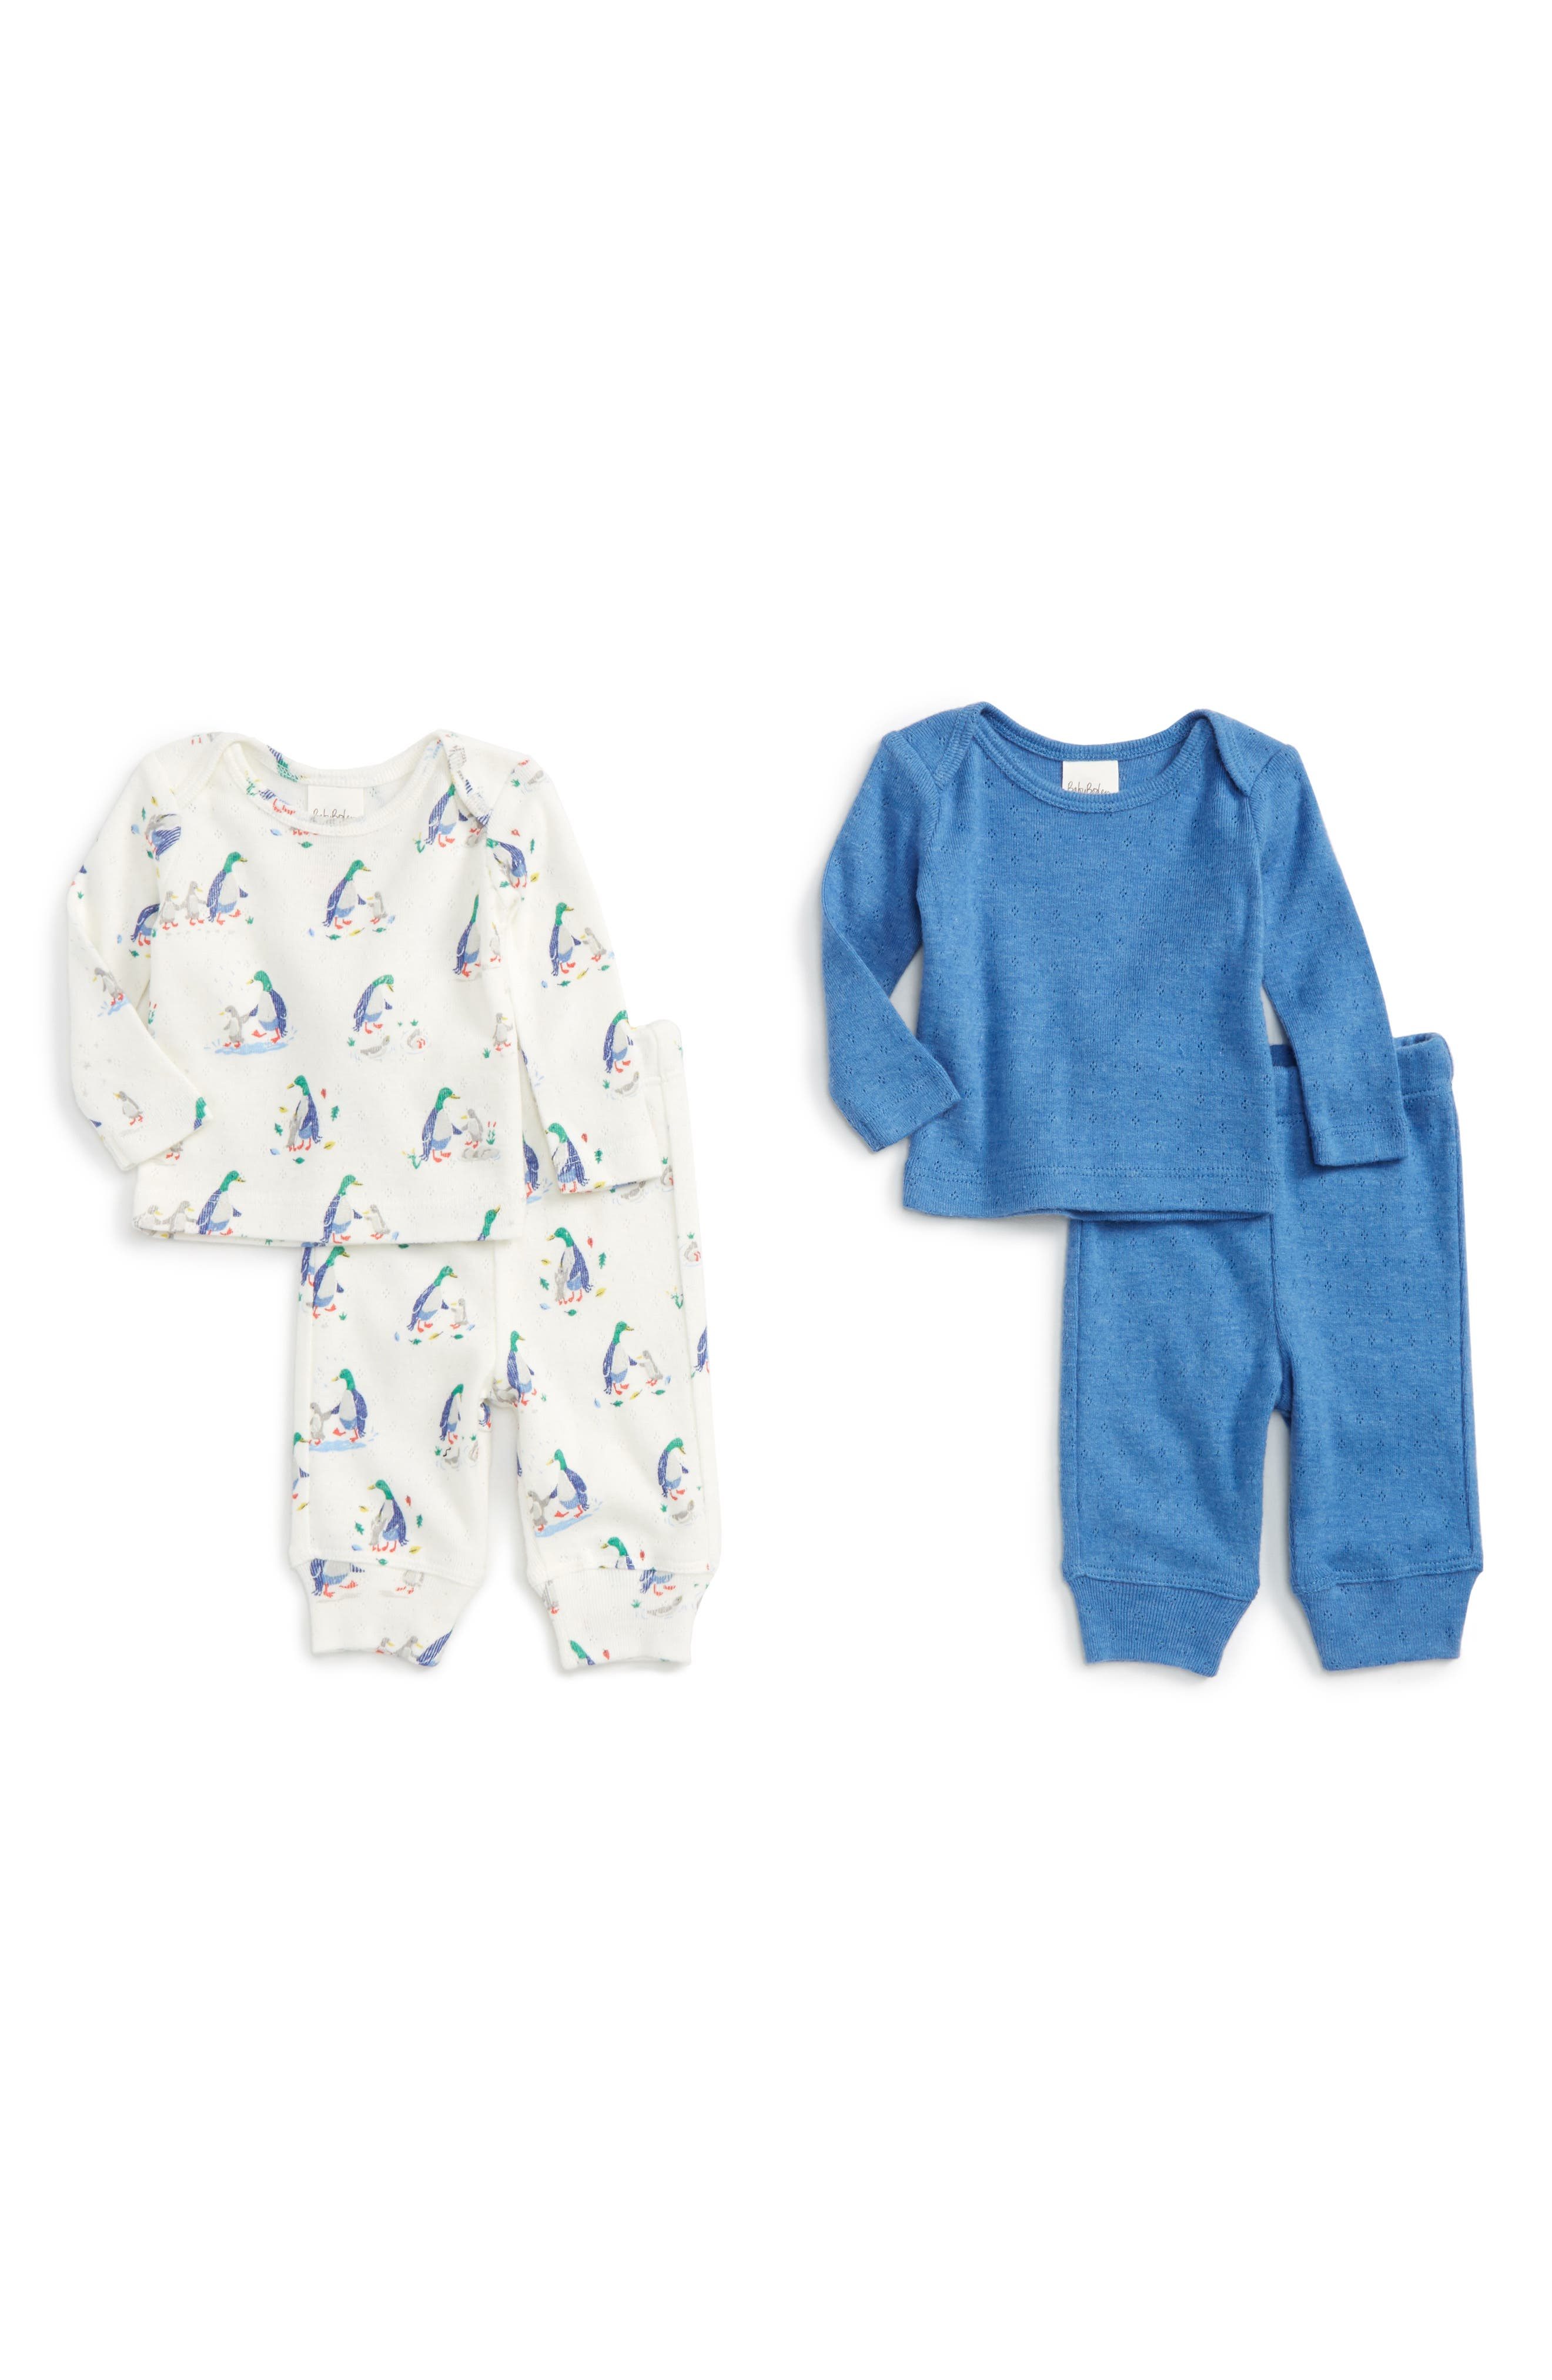 Alternate Image 1 Selected - Mini Boden Supersoft Pointelle 2-Pack T-Shirts & Pants (Baby)